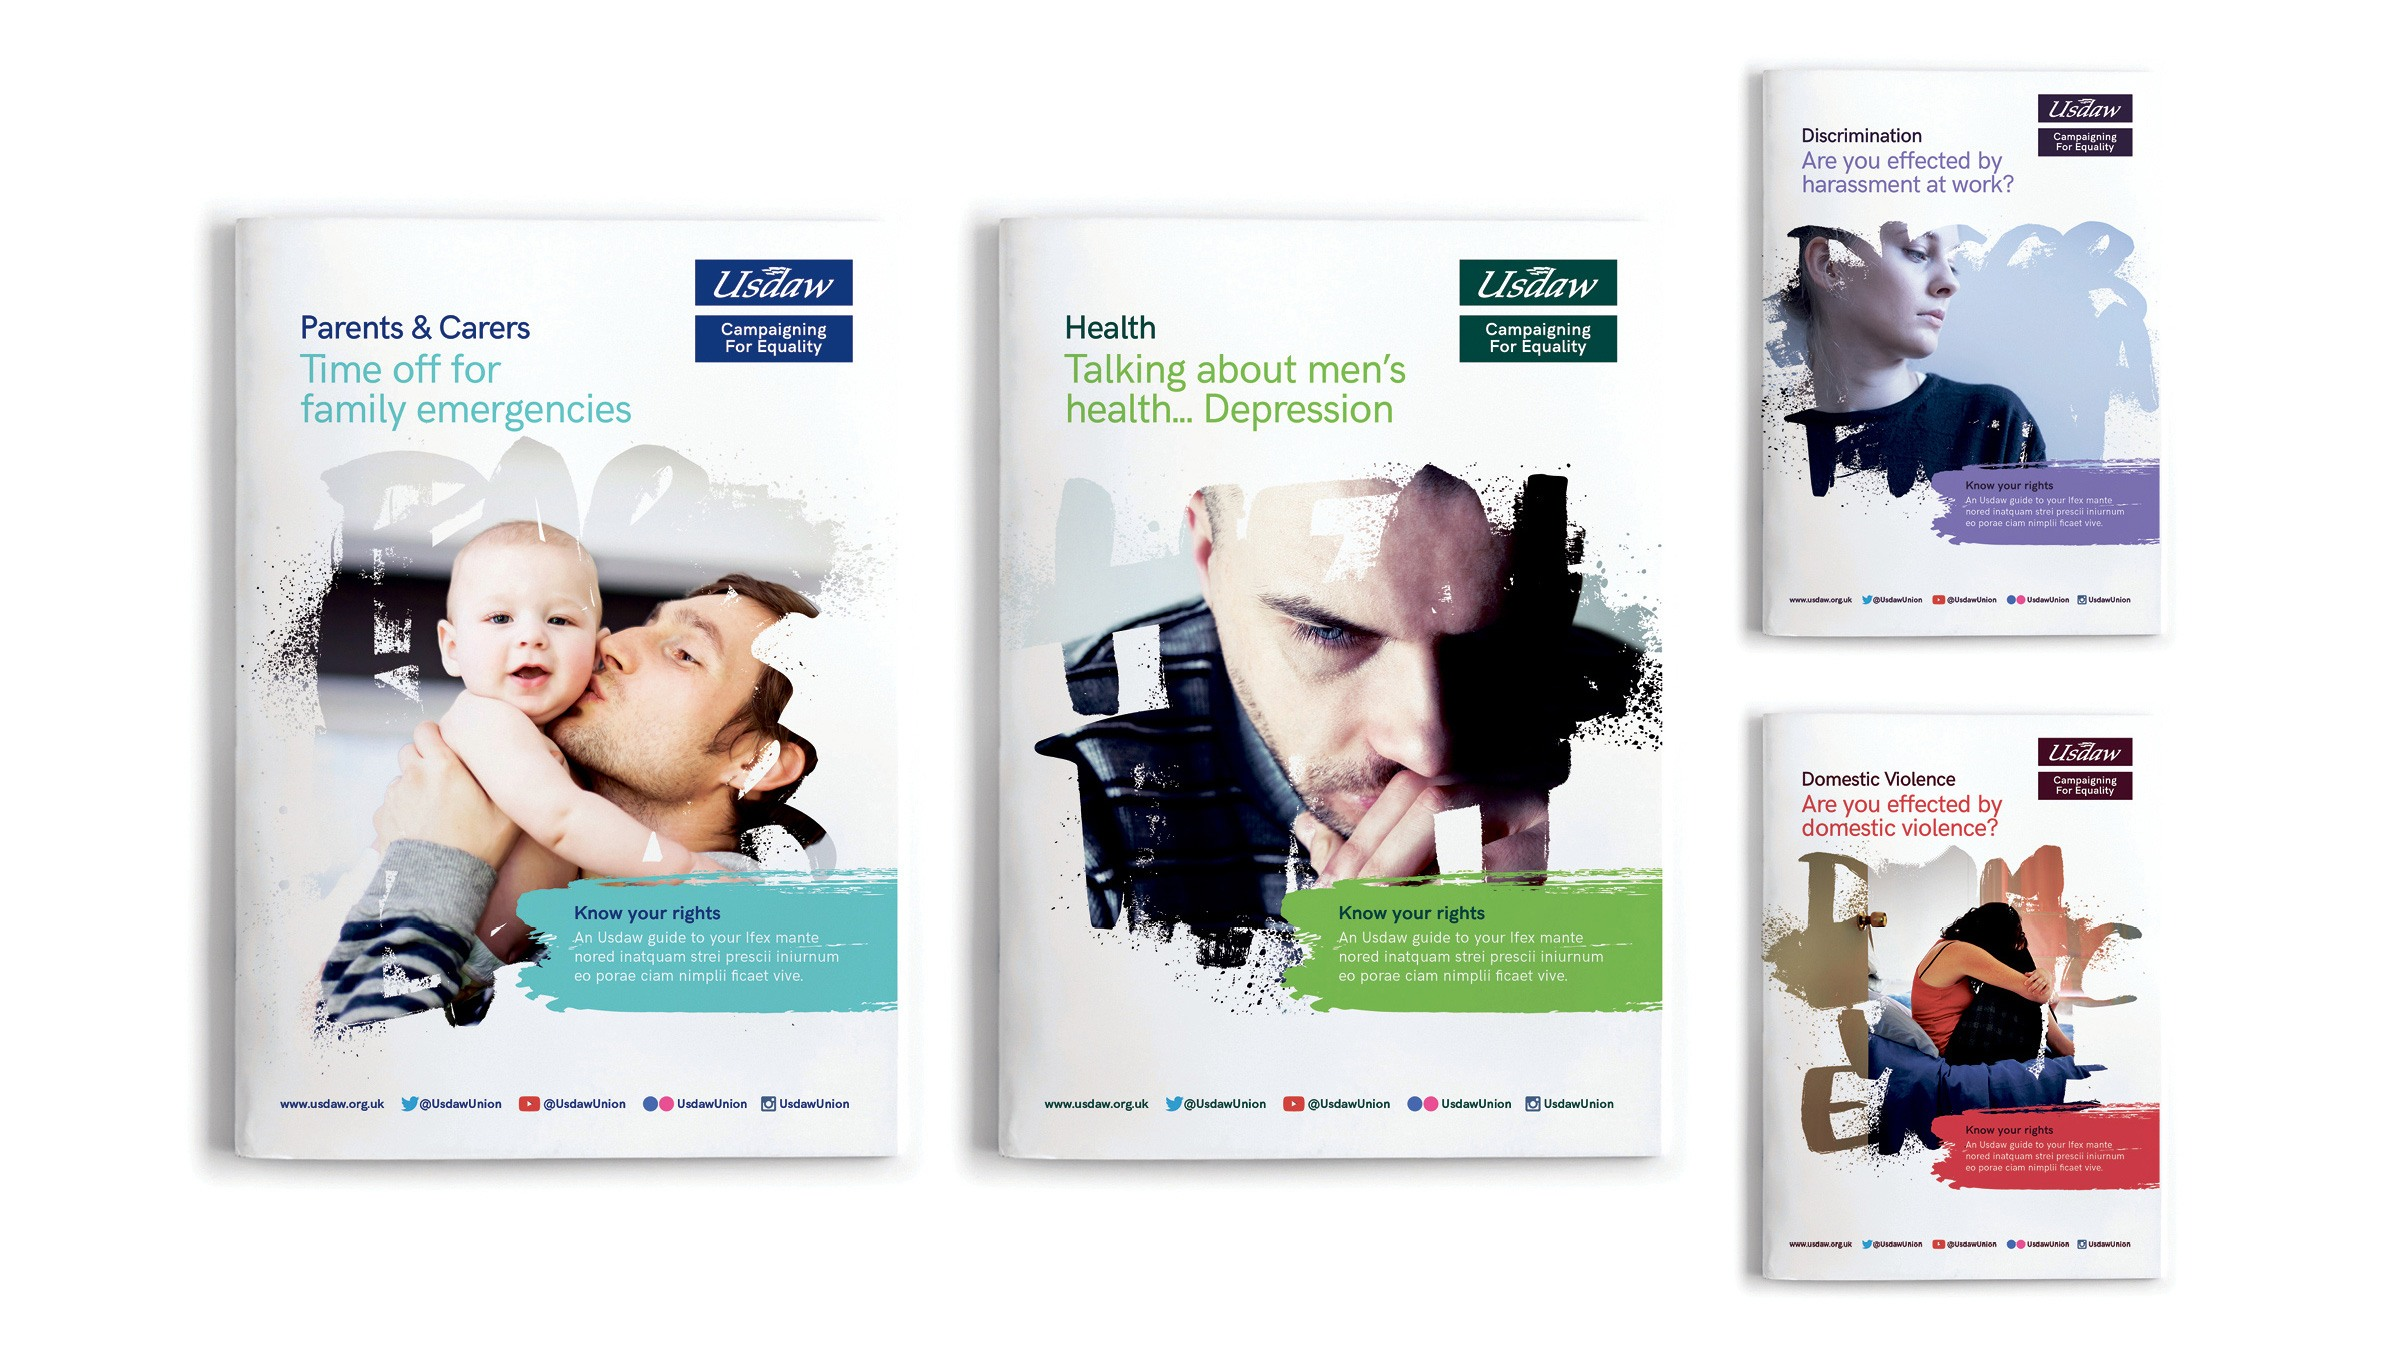 usdaw-covers-1